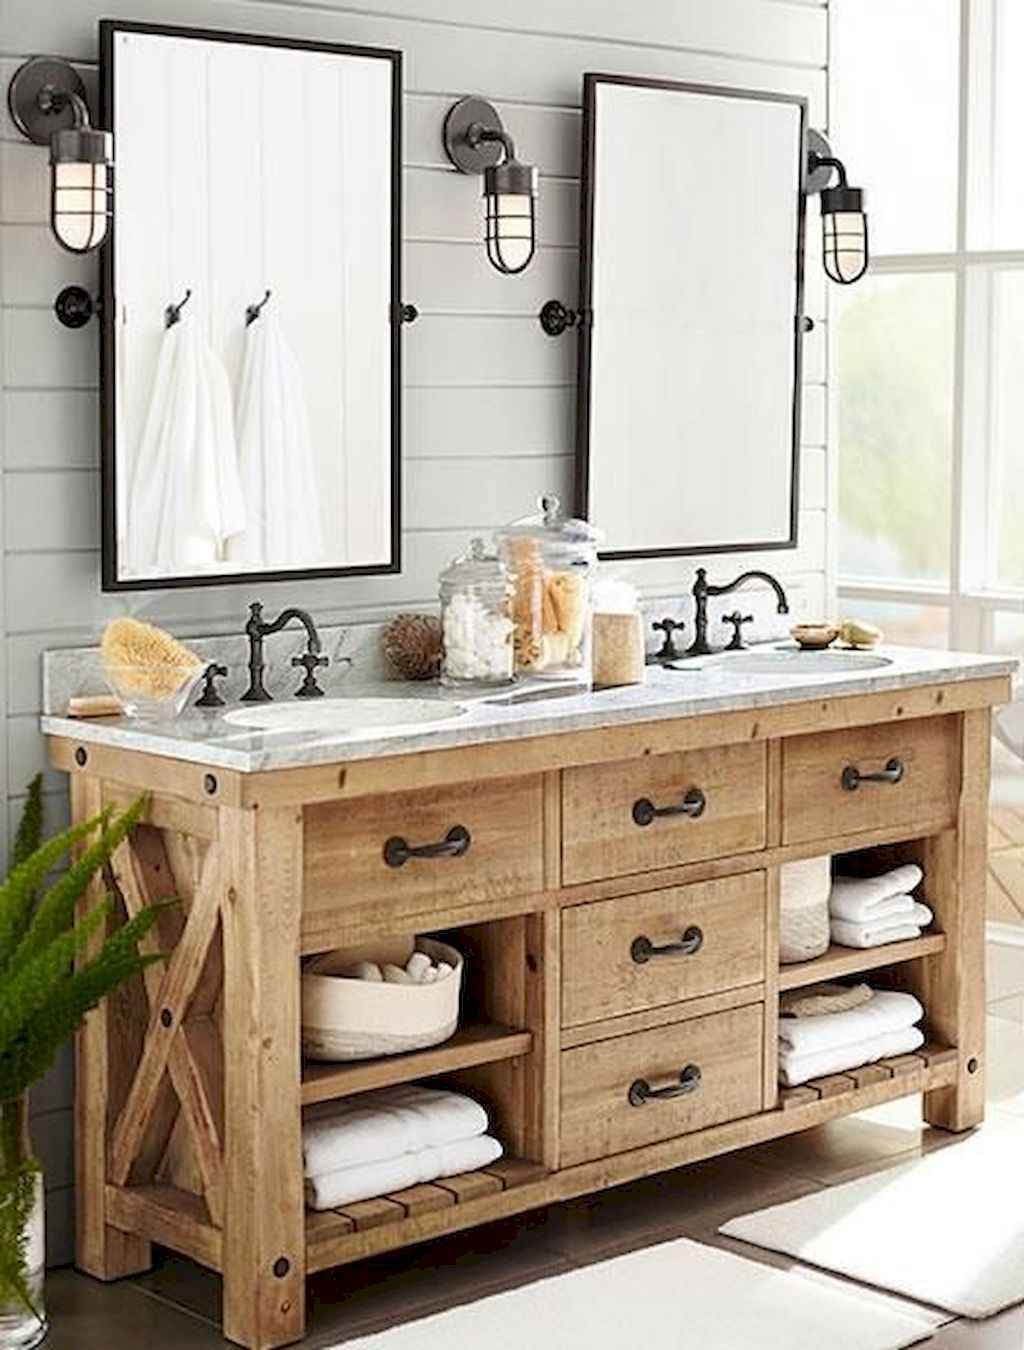 111 awesome small bathroom remodel ideas on a budget (36)